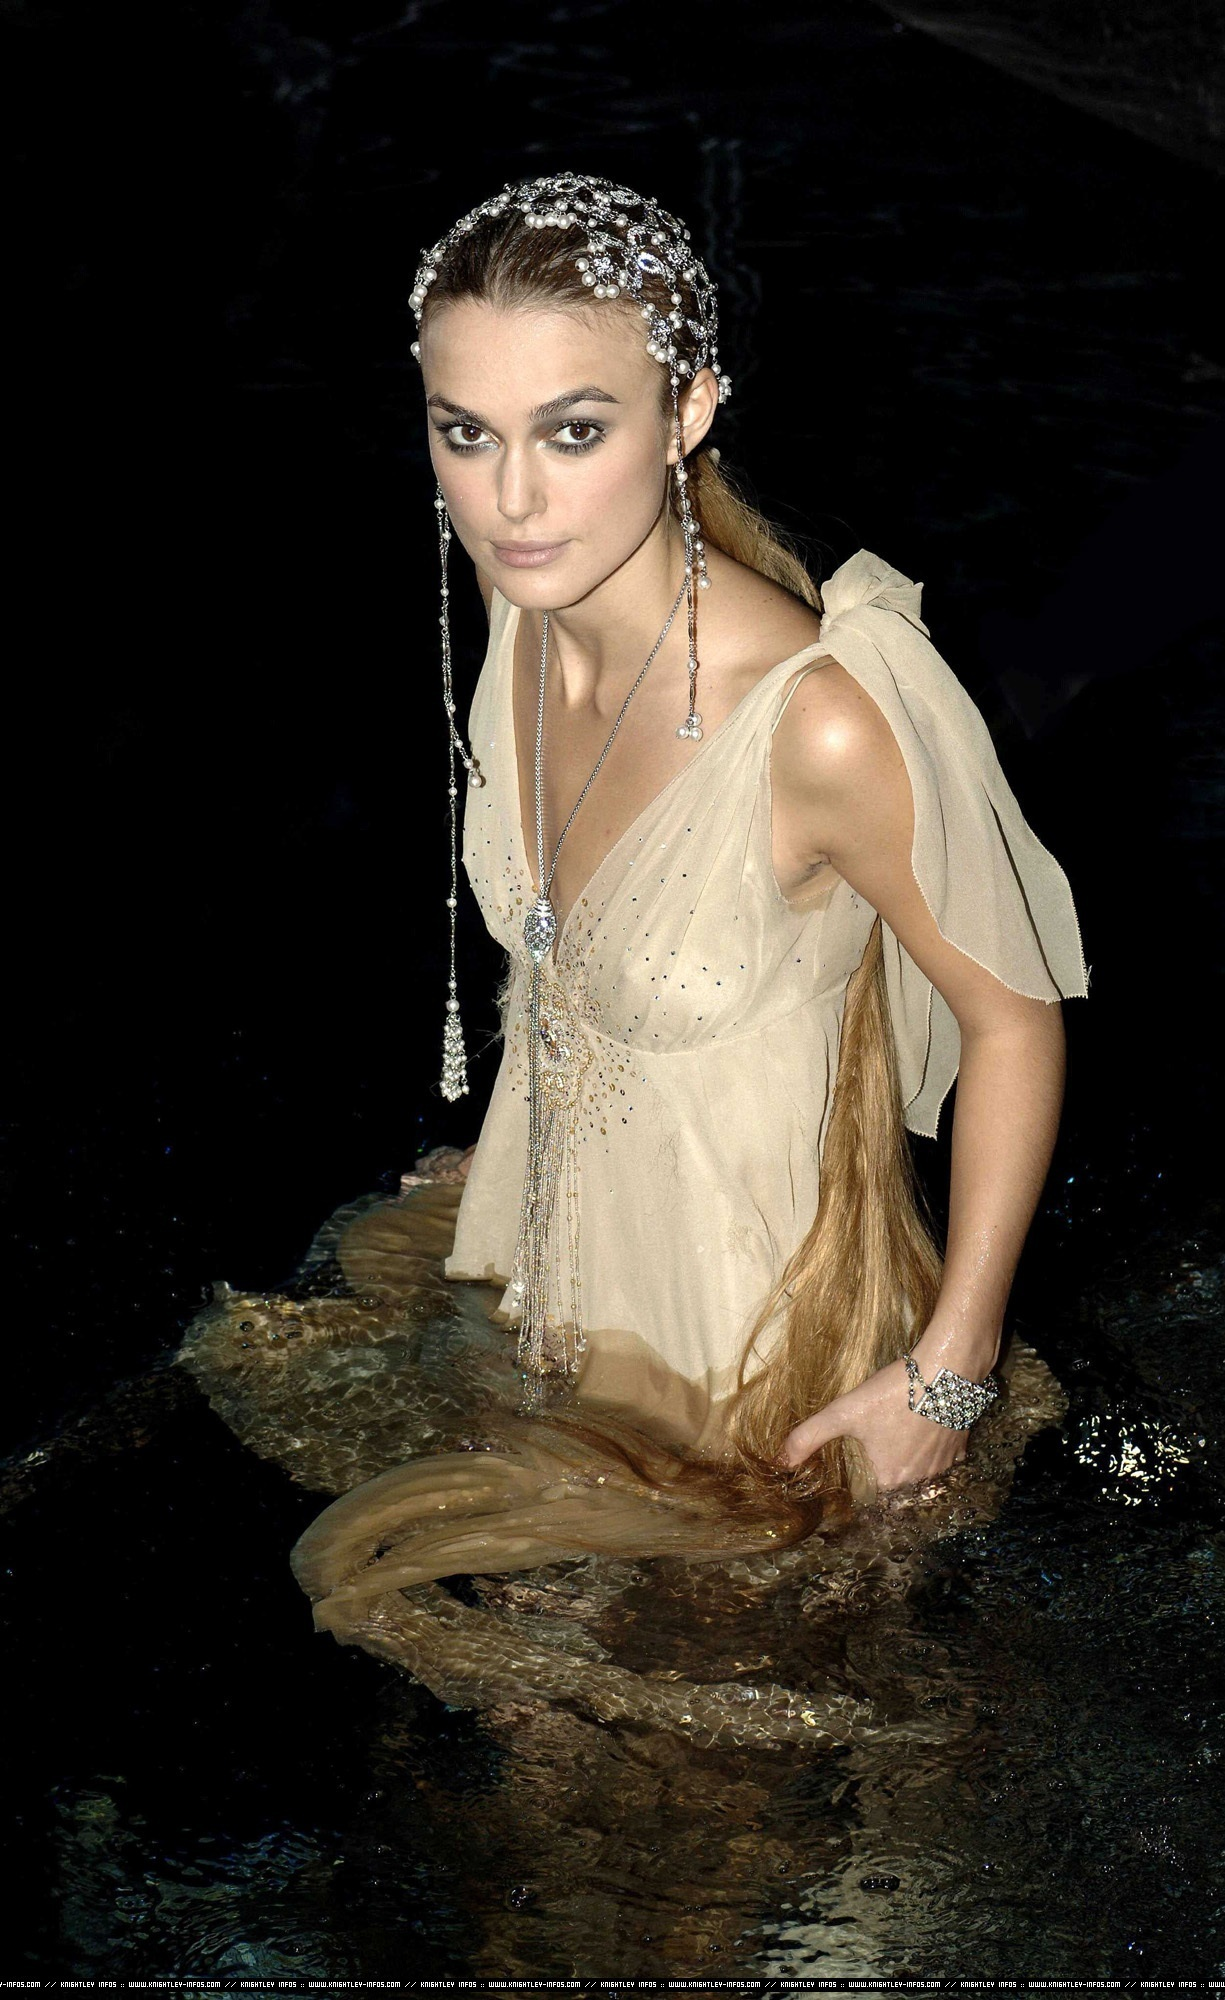 Keira Knightley images Keira Knightley HD wallpaper and background ... Keira Knightley